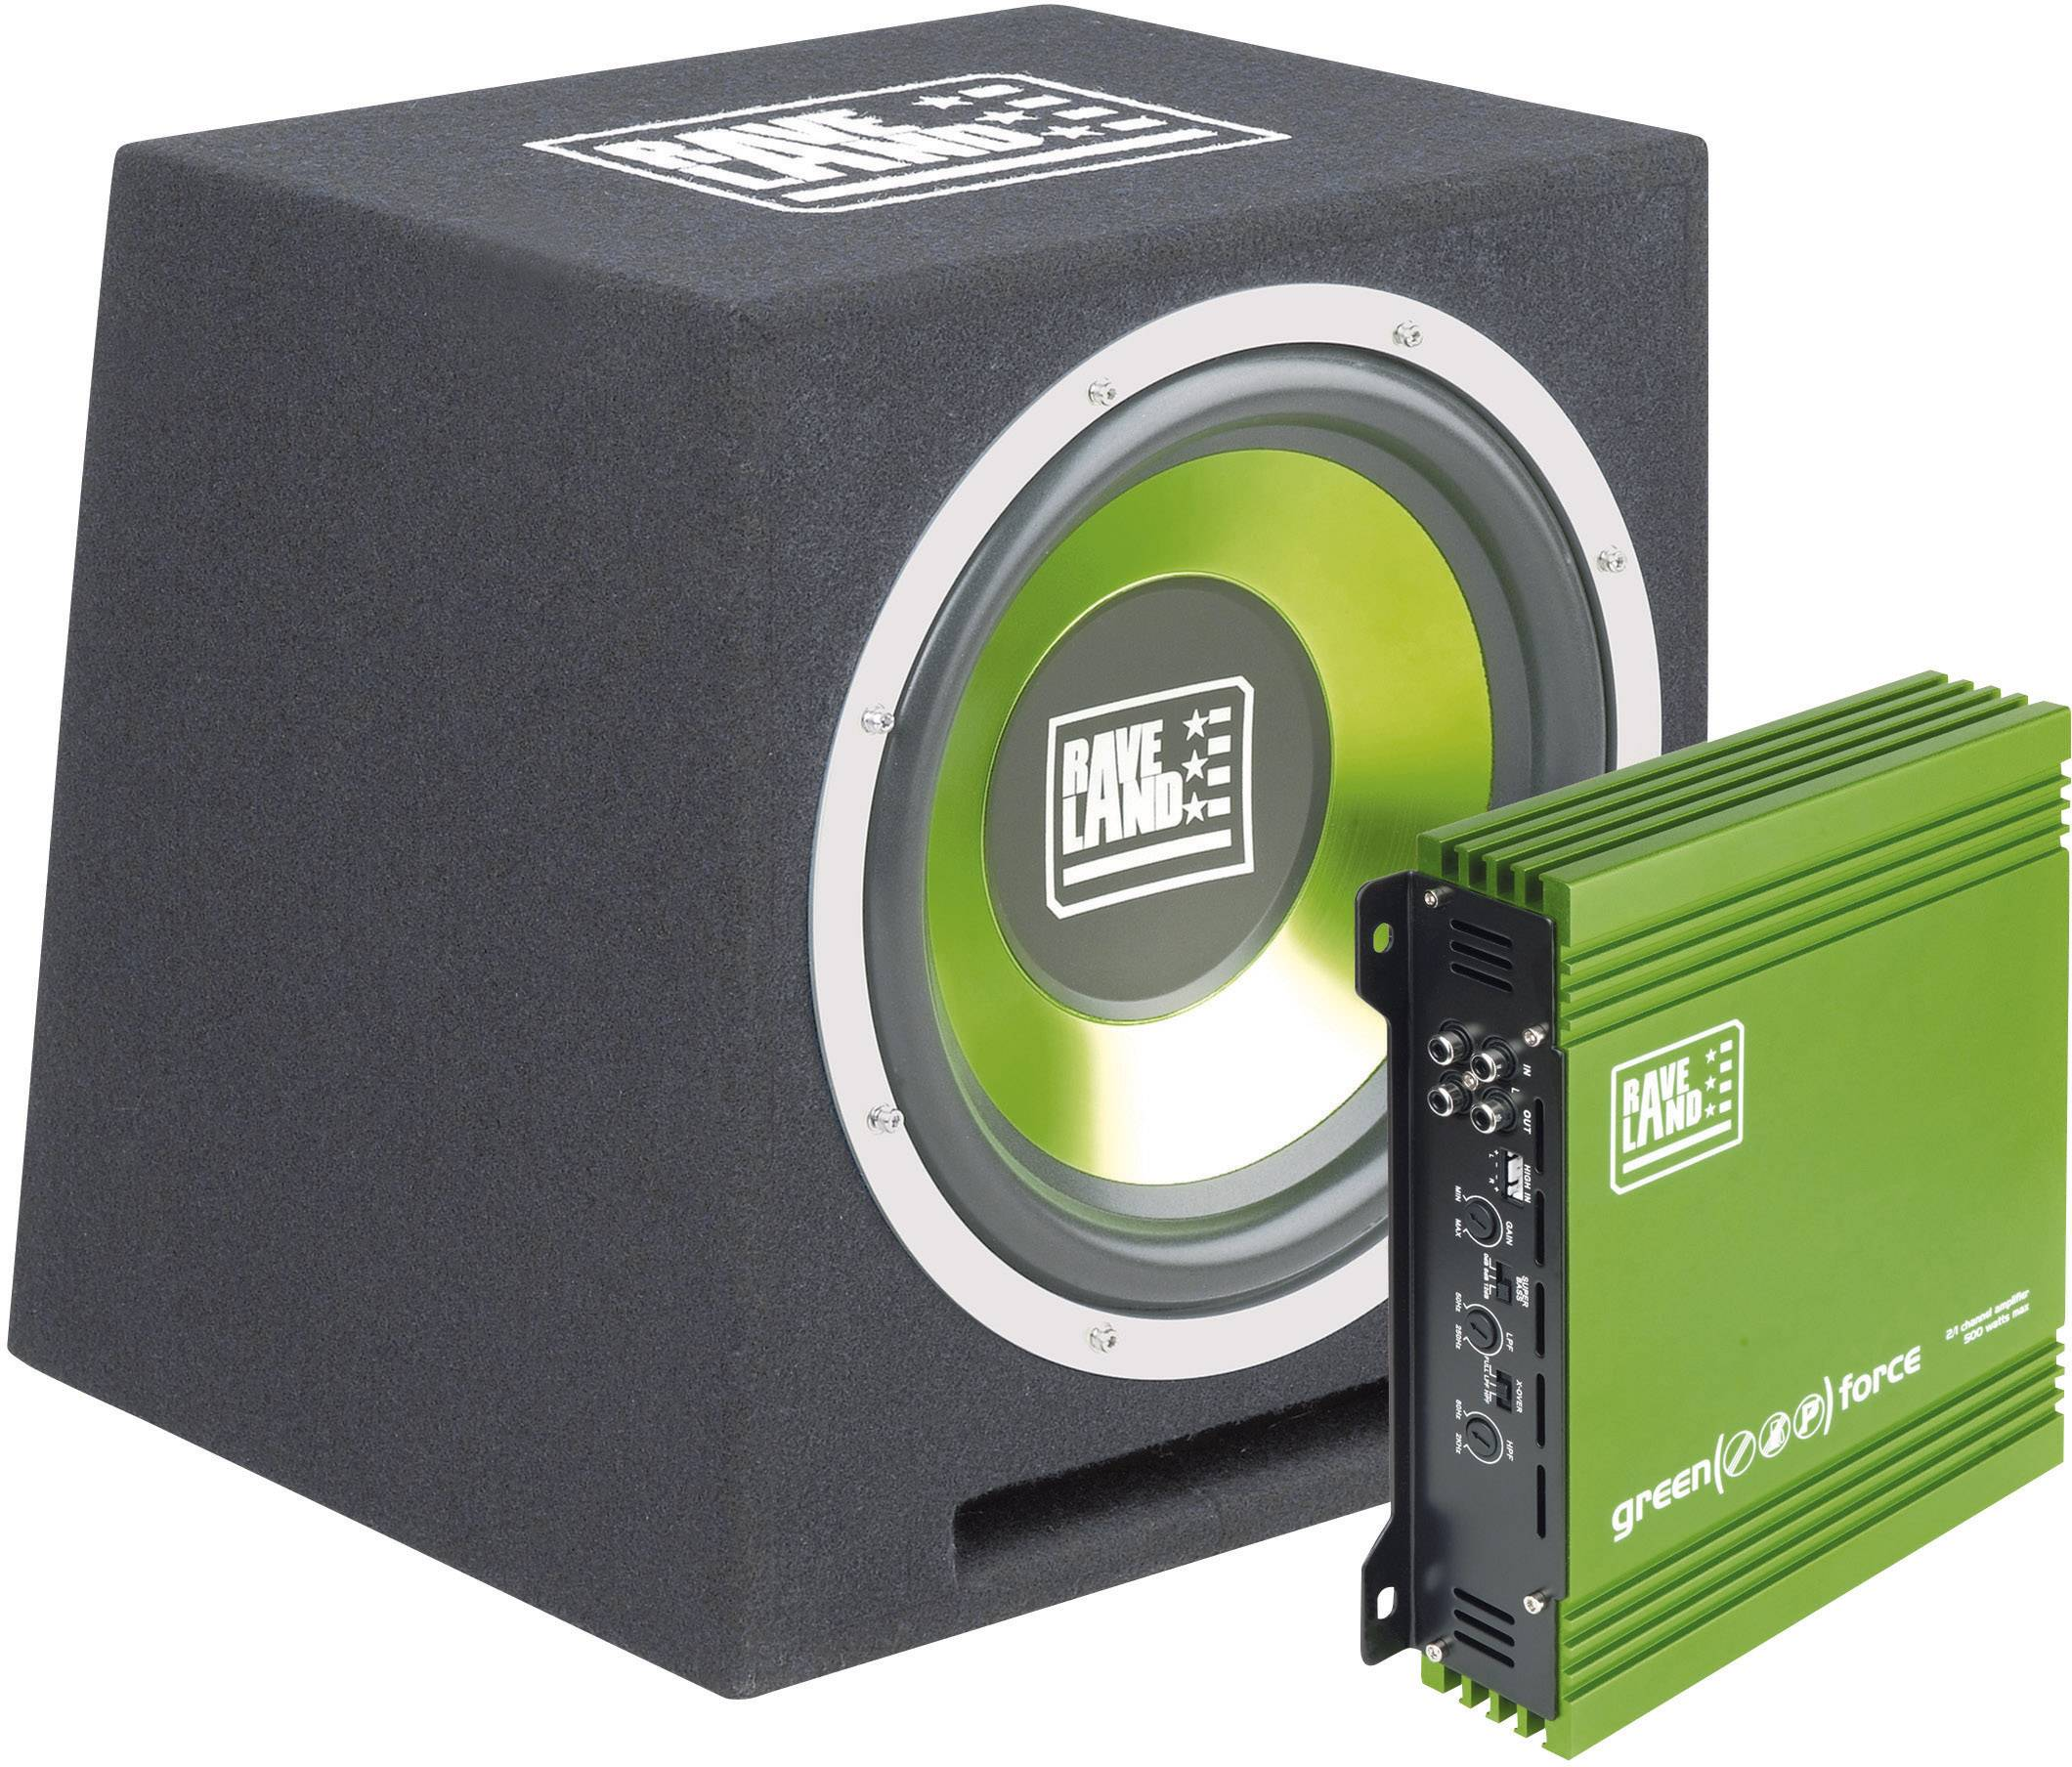 Hi-Fi súprava do auta Raveland Green Force I, 2 x 250 W